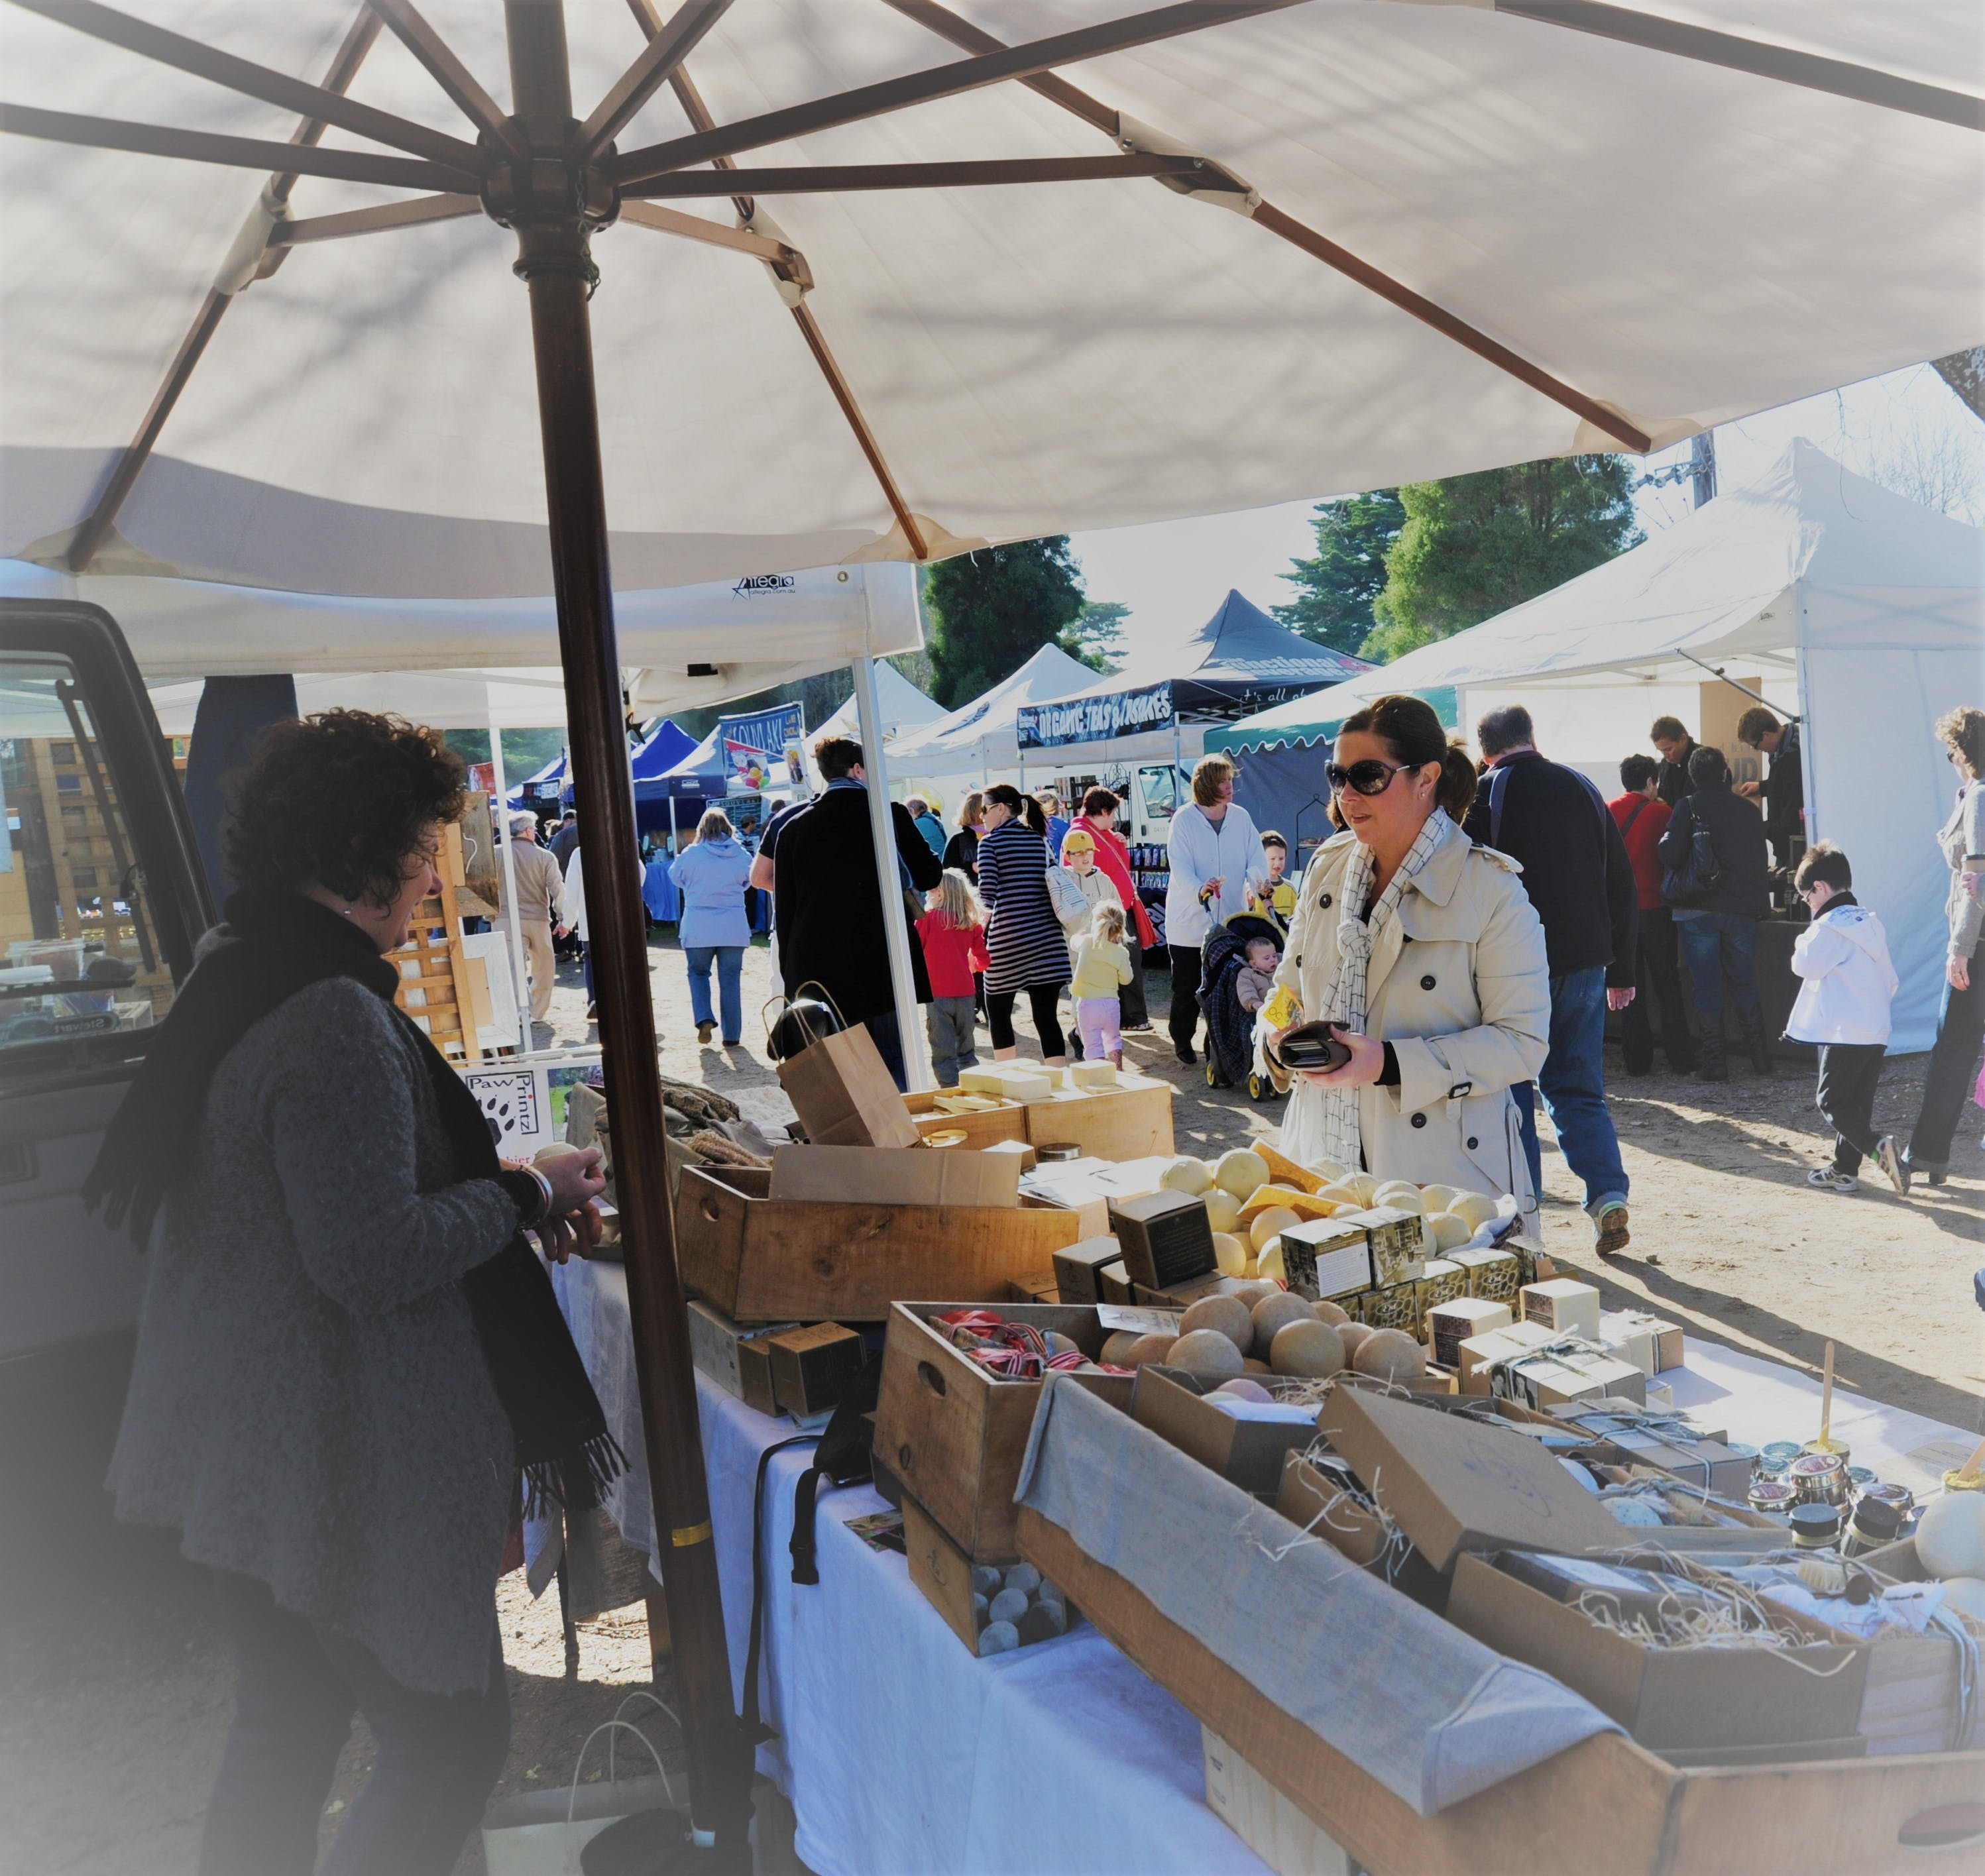 Mornington Racecourse Market - Attractions